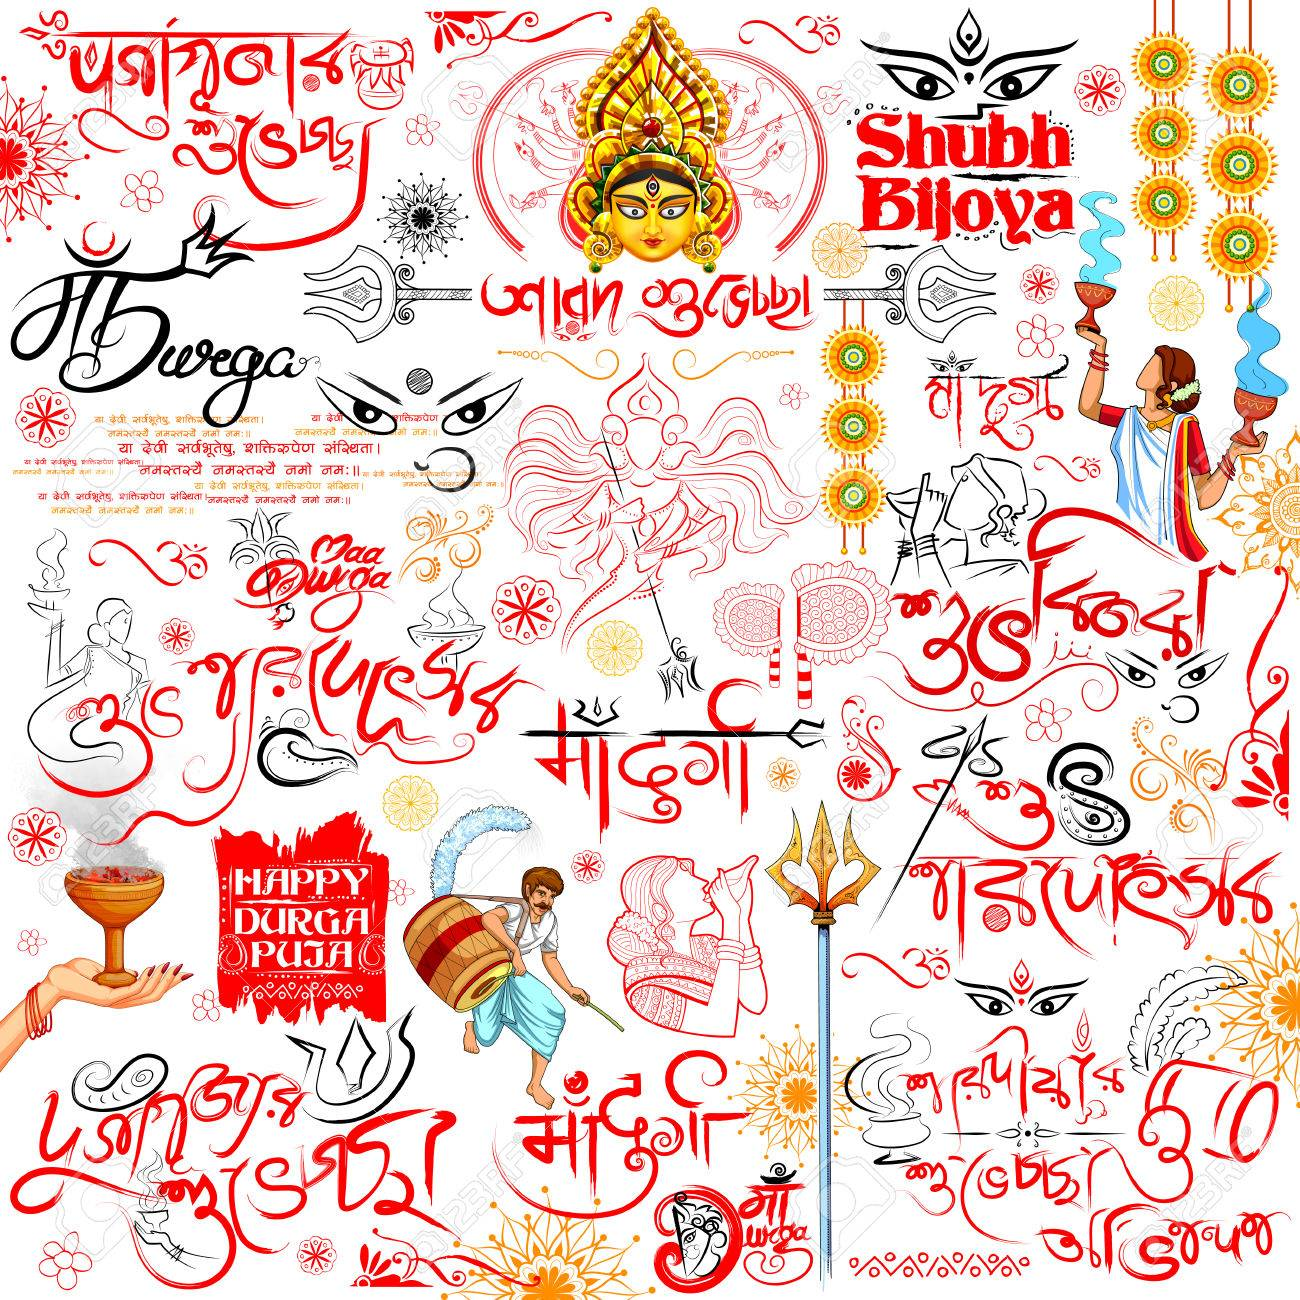 illustration of Goddess Durga in Happy Dussehra background with